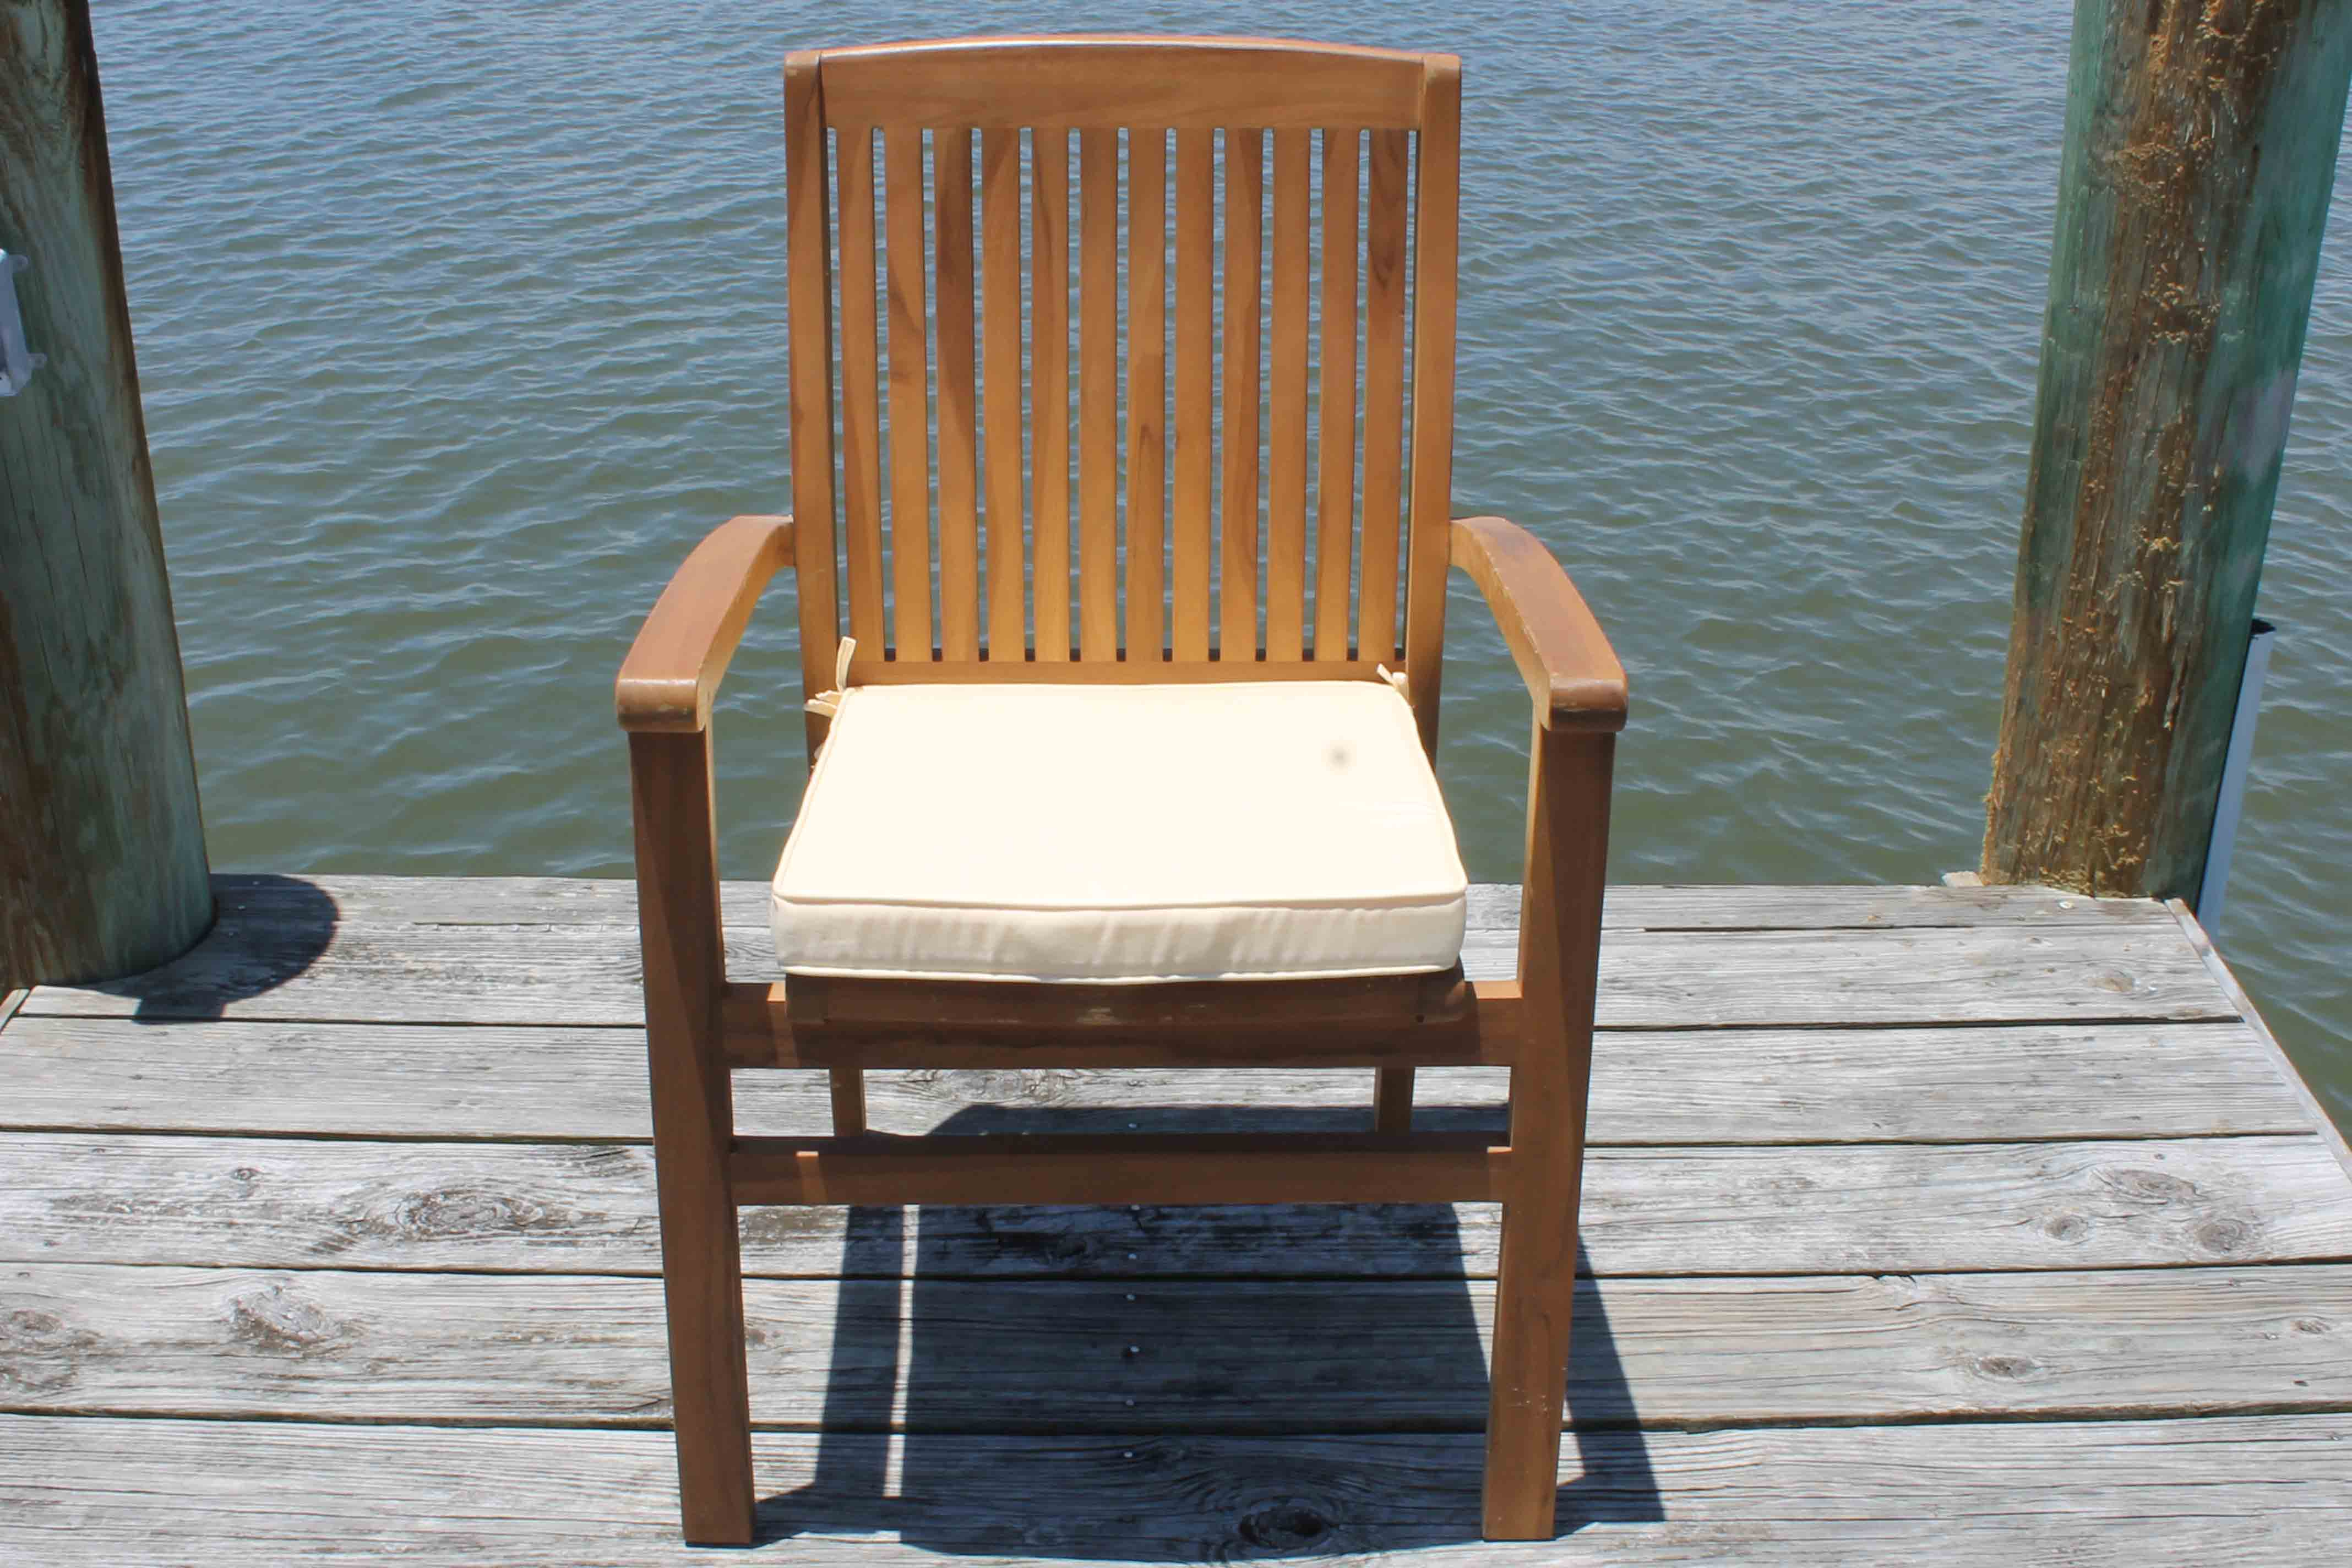 SALE Pacific Chair Cushion Pad Oceanic Teak Furniture